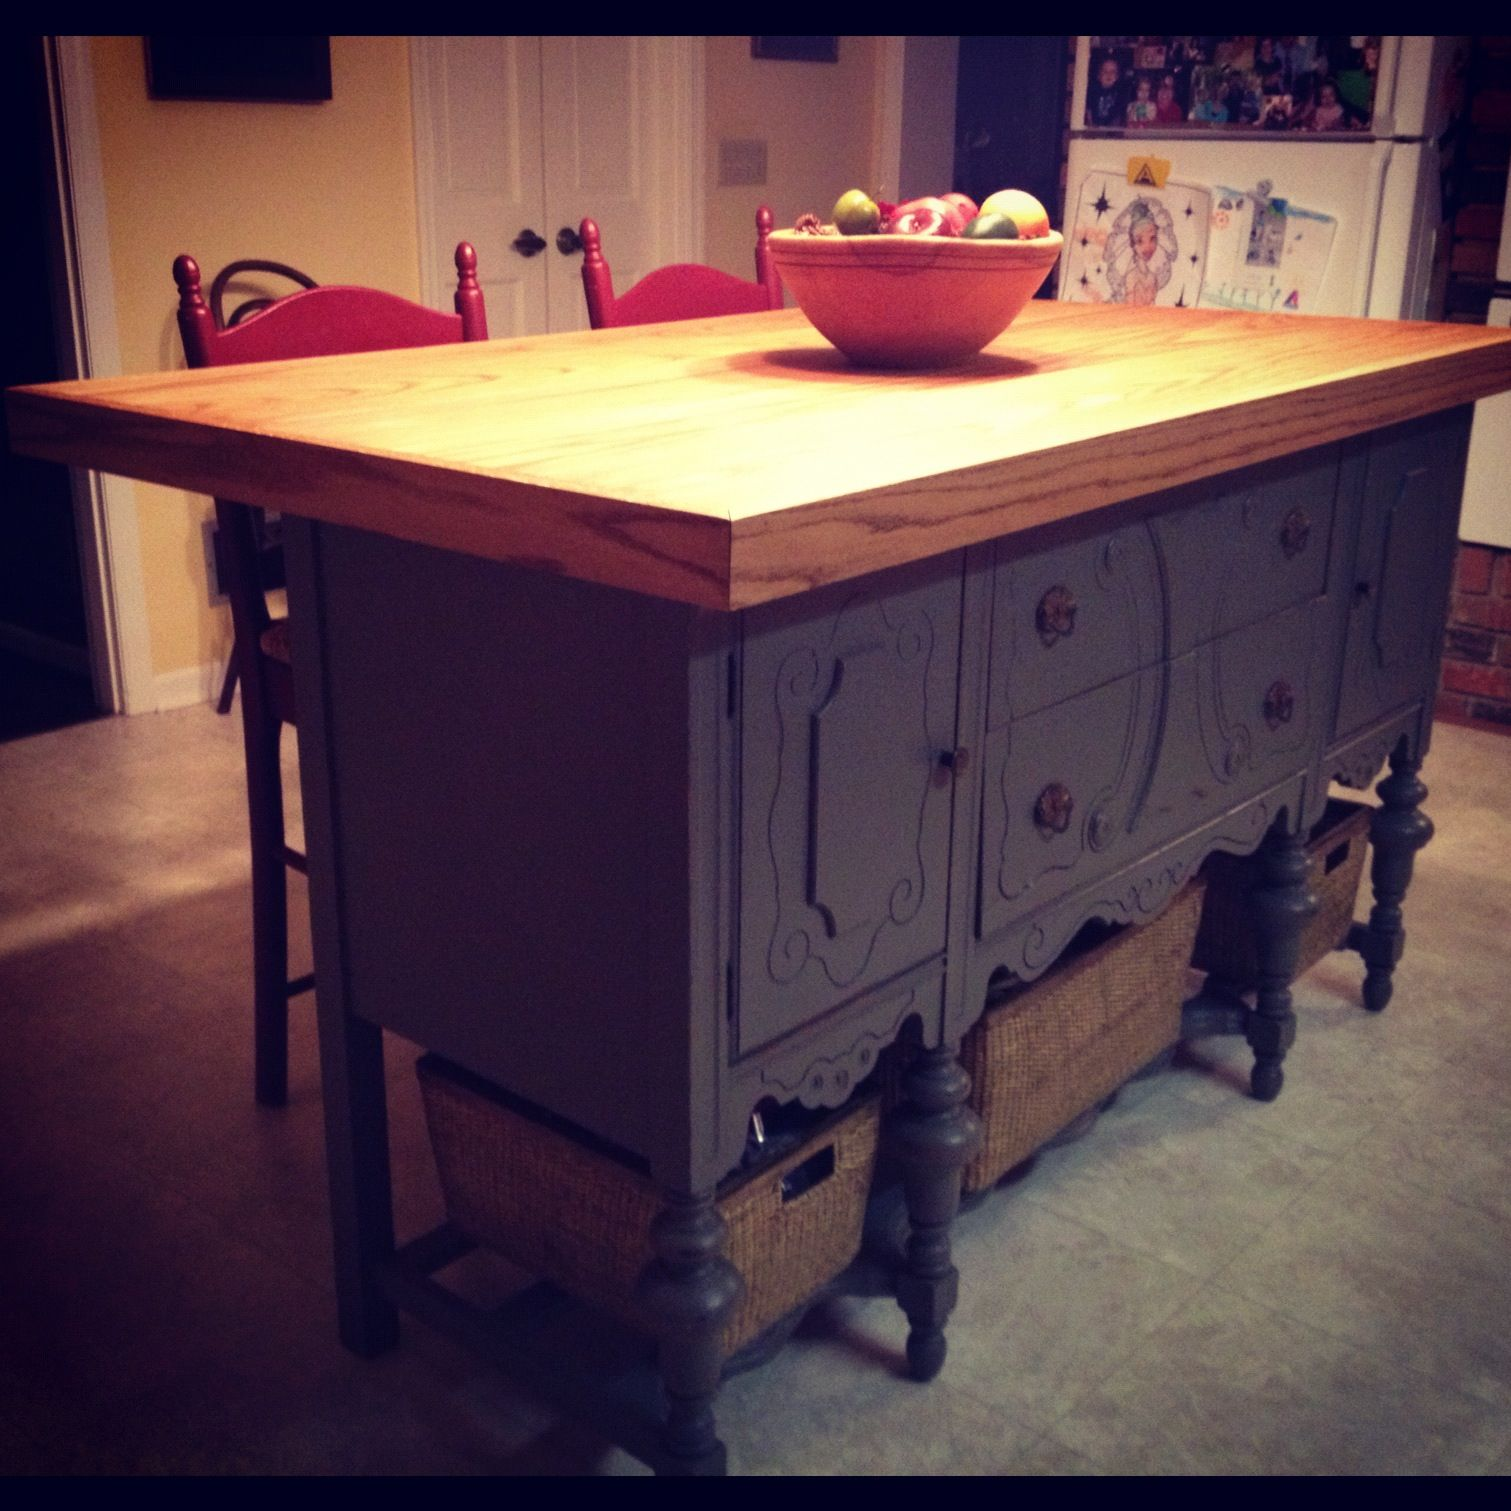 Kitchen Island Made From Antique Buffet: Best 25+ Kitchen Island Made From Antique Buffet Ideas On Pinterest